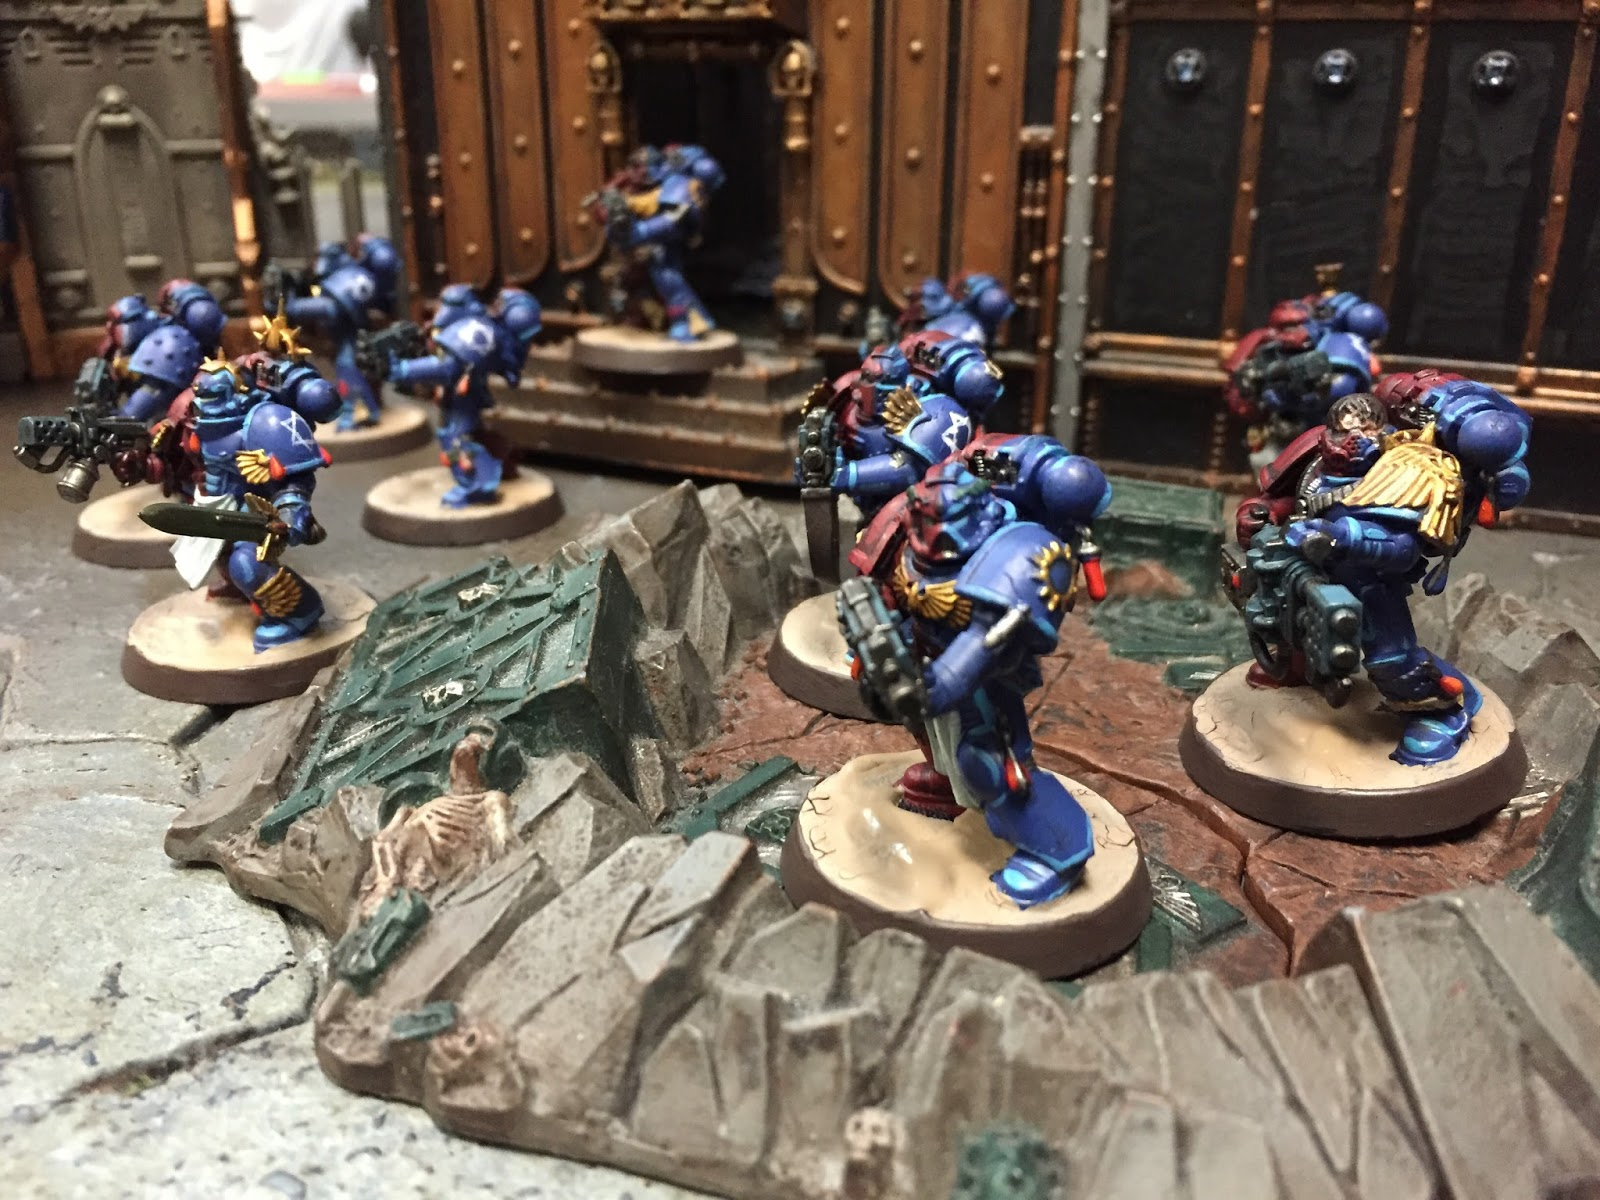 Whats on your table custom space marine army faeit 212 for Table 3 6 usmc